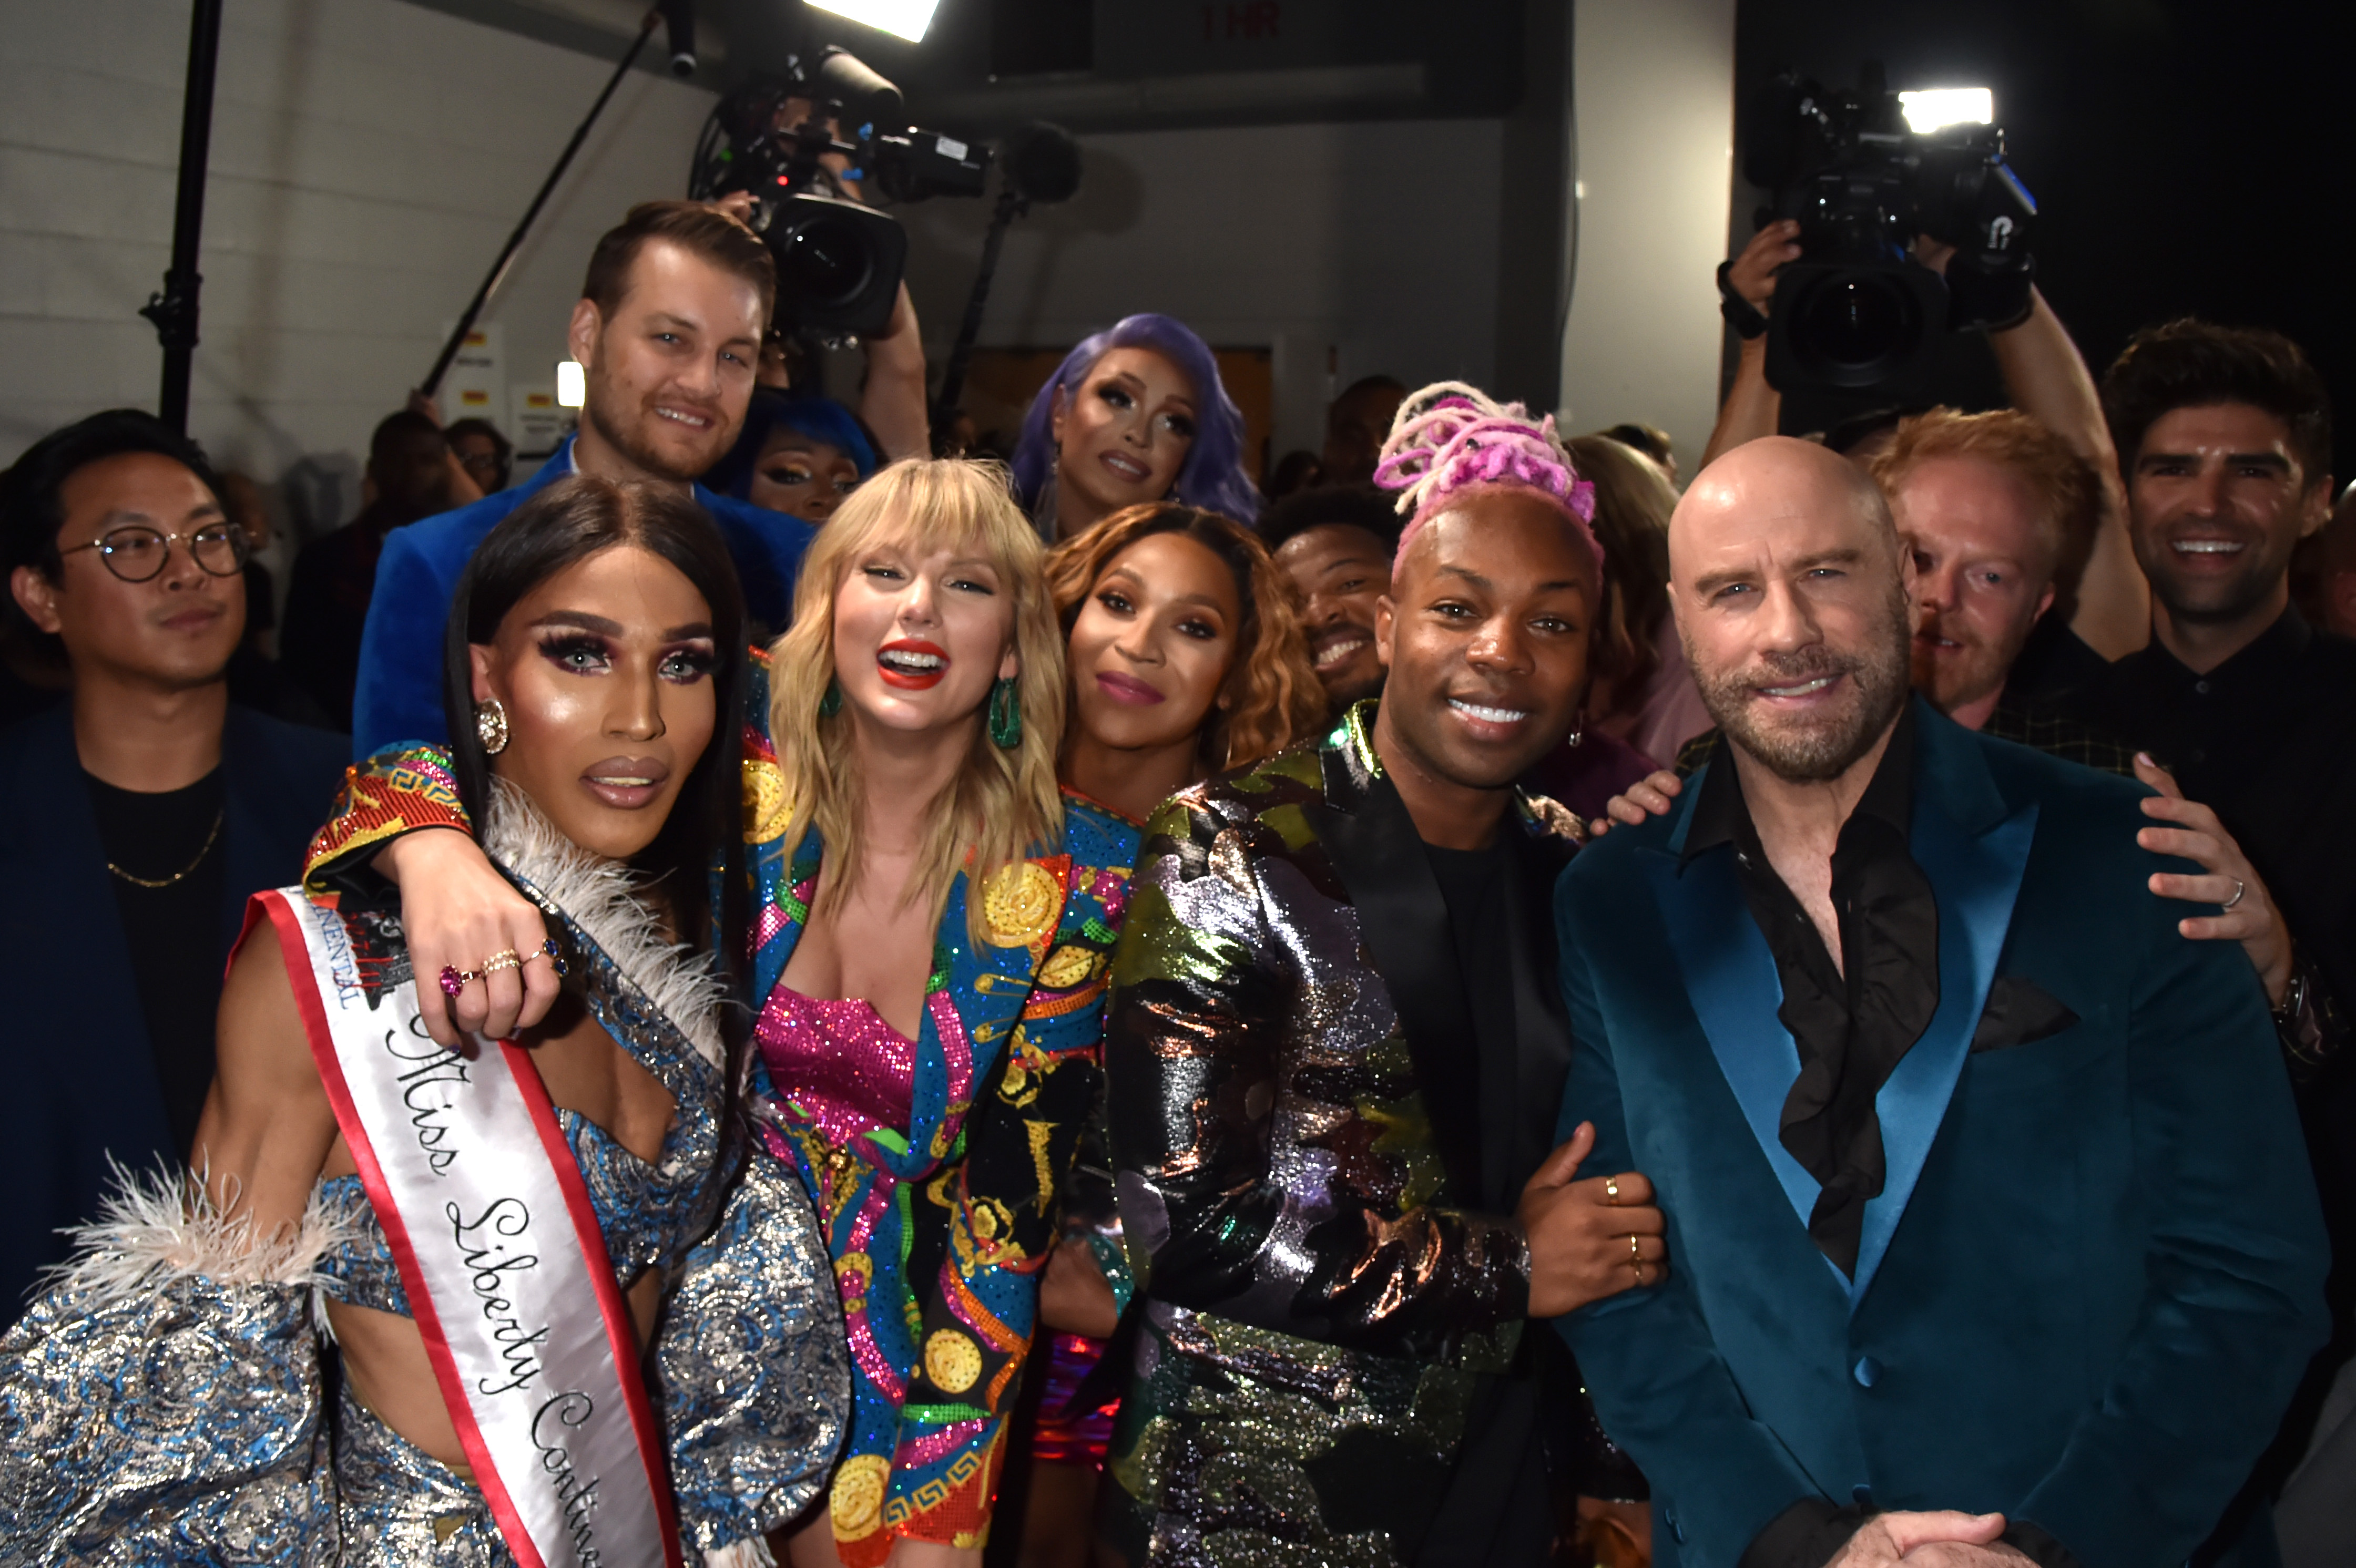 NEWARK, NEW JERSEY - AUGUST 26: Taylor Swift, Todrick Hall, John Travolta, and Jesse Tyler Ferguson pose backstage during the 2019 MTV Video Music Awards at Prudential Center on August 26, 2019 in Newark, New Jersey. (Photo by Jeff Kravitz/FilmMagic)